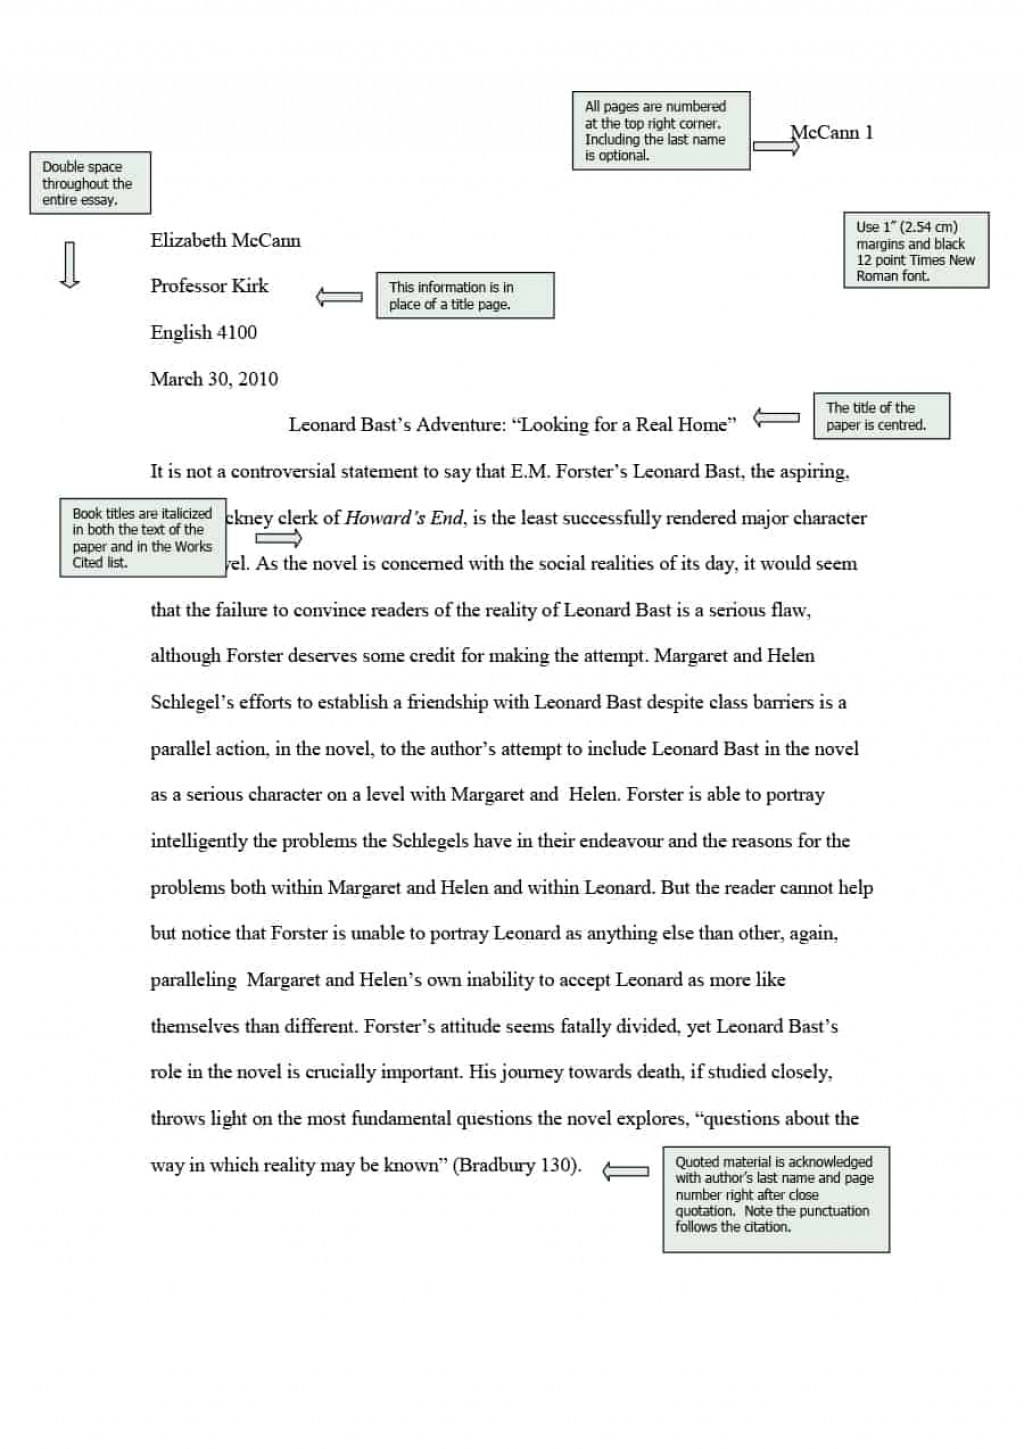 004 Essay Example Mla Format Essays Template Magnificent Persuasive Outline 2017 Large